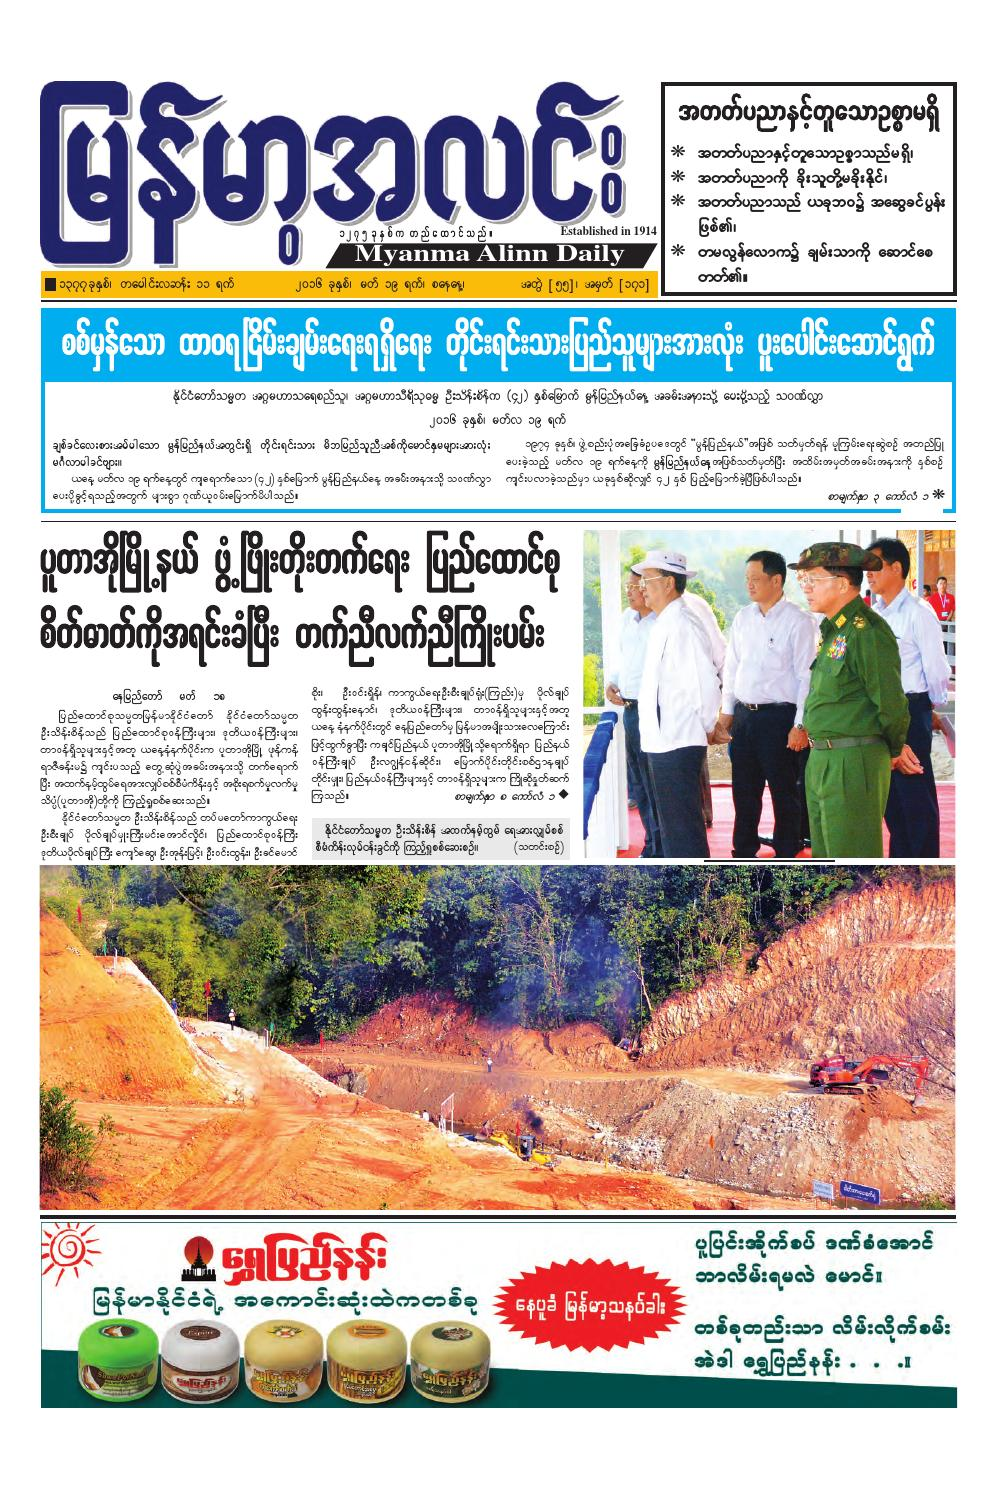 Myanma Alinn Daily Journal